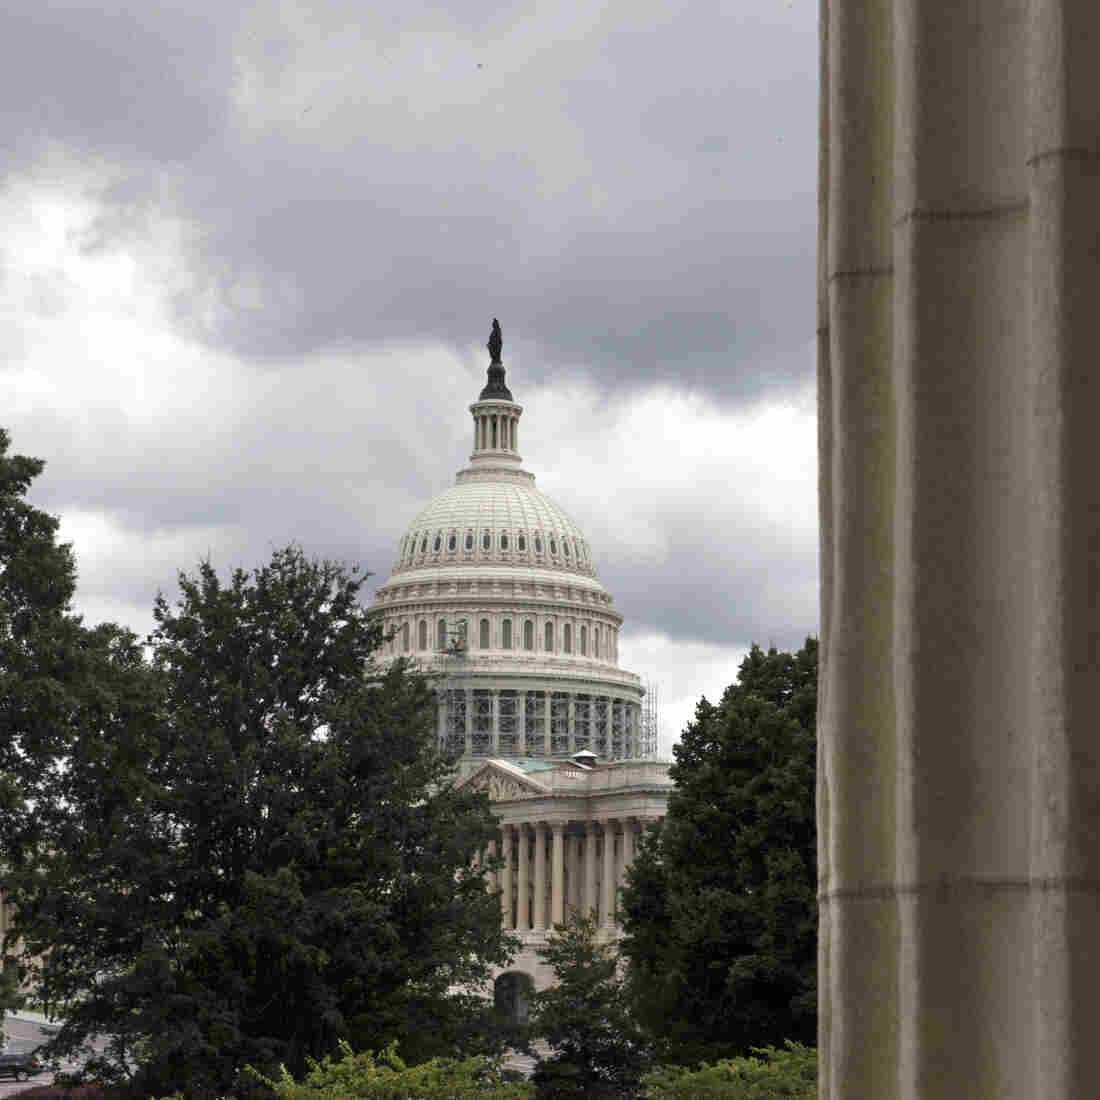 5 Questions About The 2 Weeks Congress Plans To Work This Fall